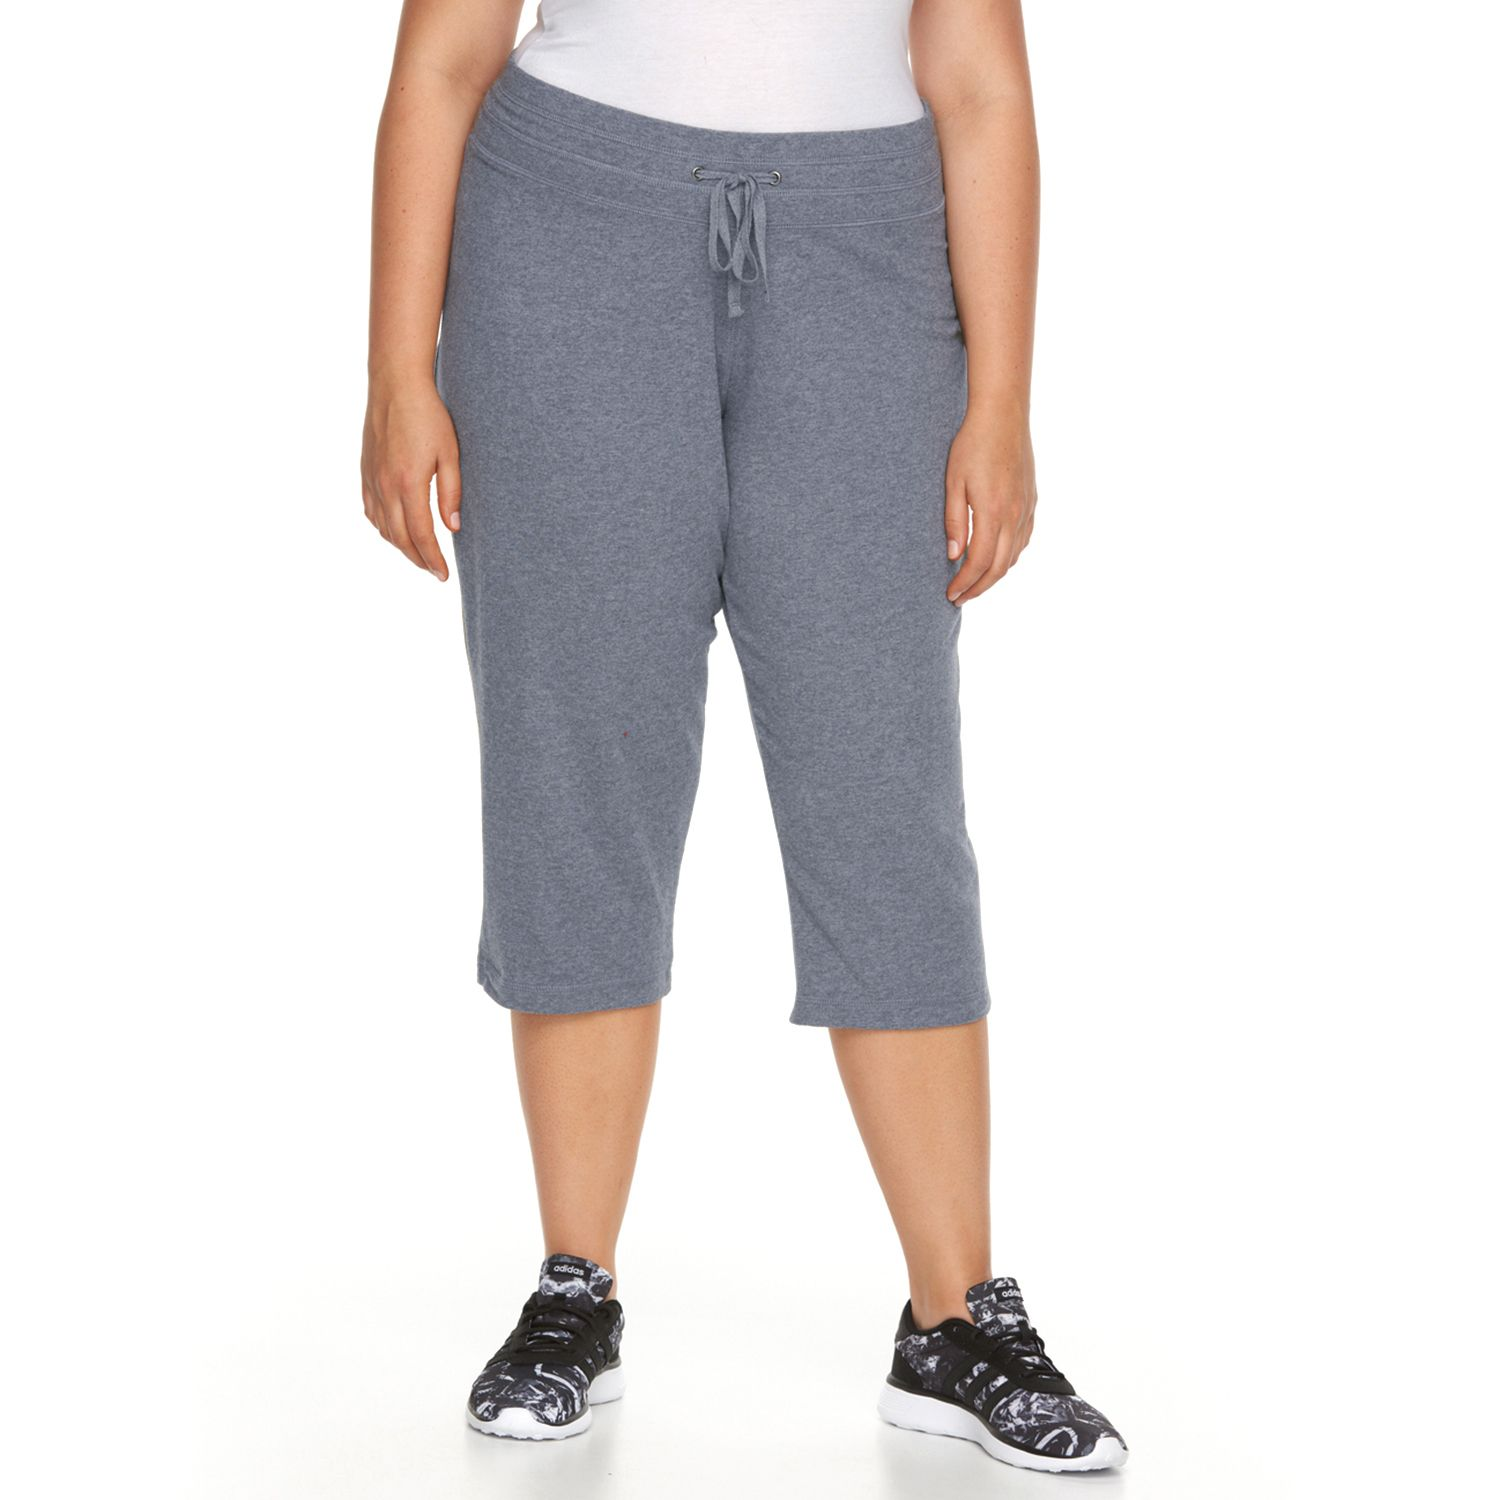 Womens Capris Clearance - The Else